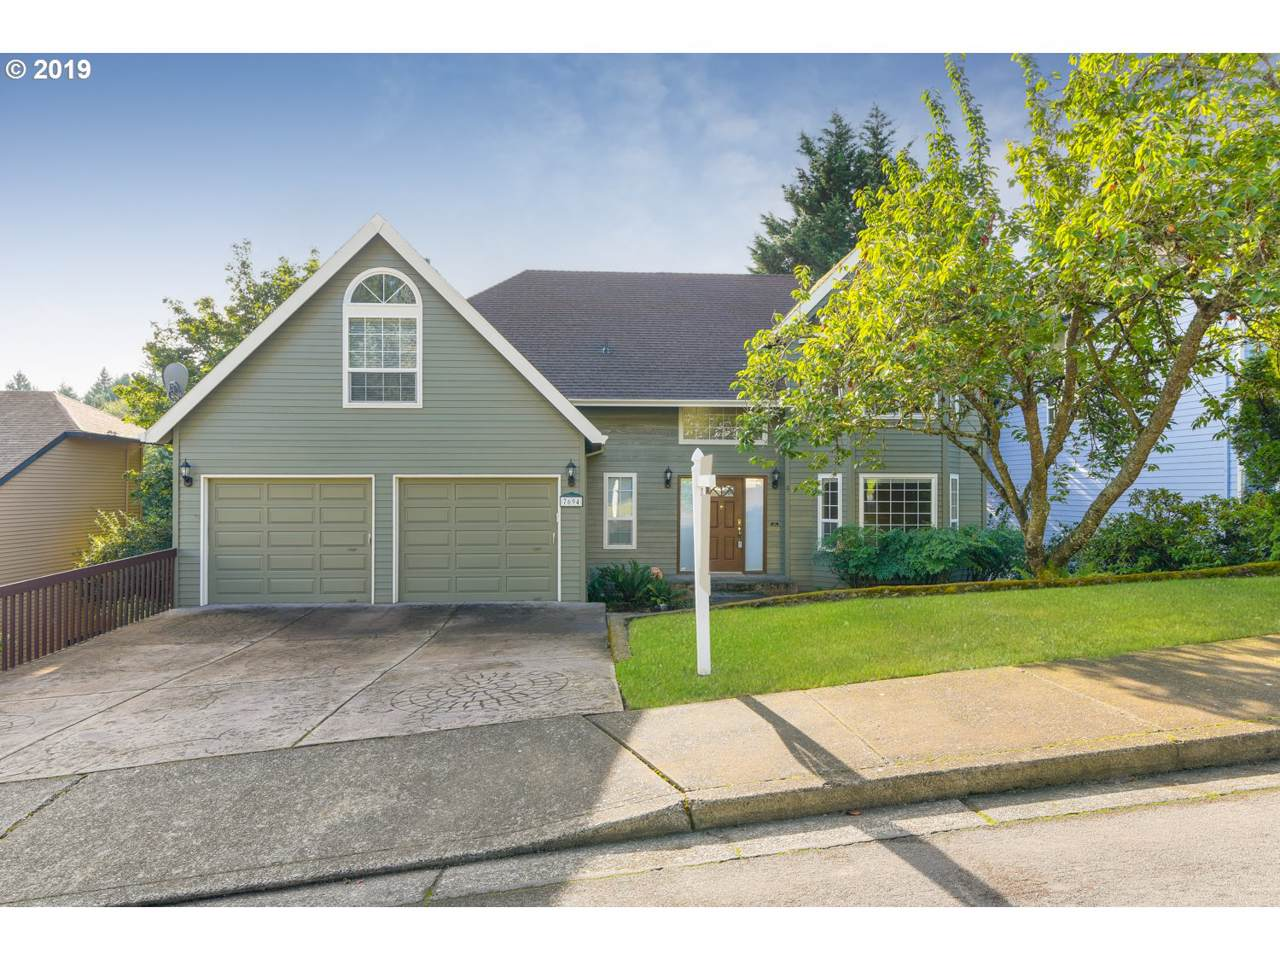 7694 Bayberry Dr - Photo 1